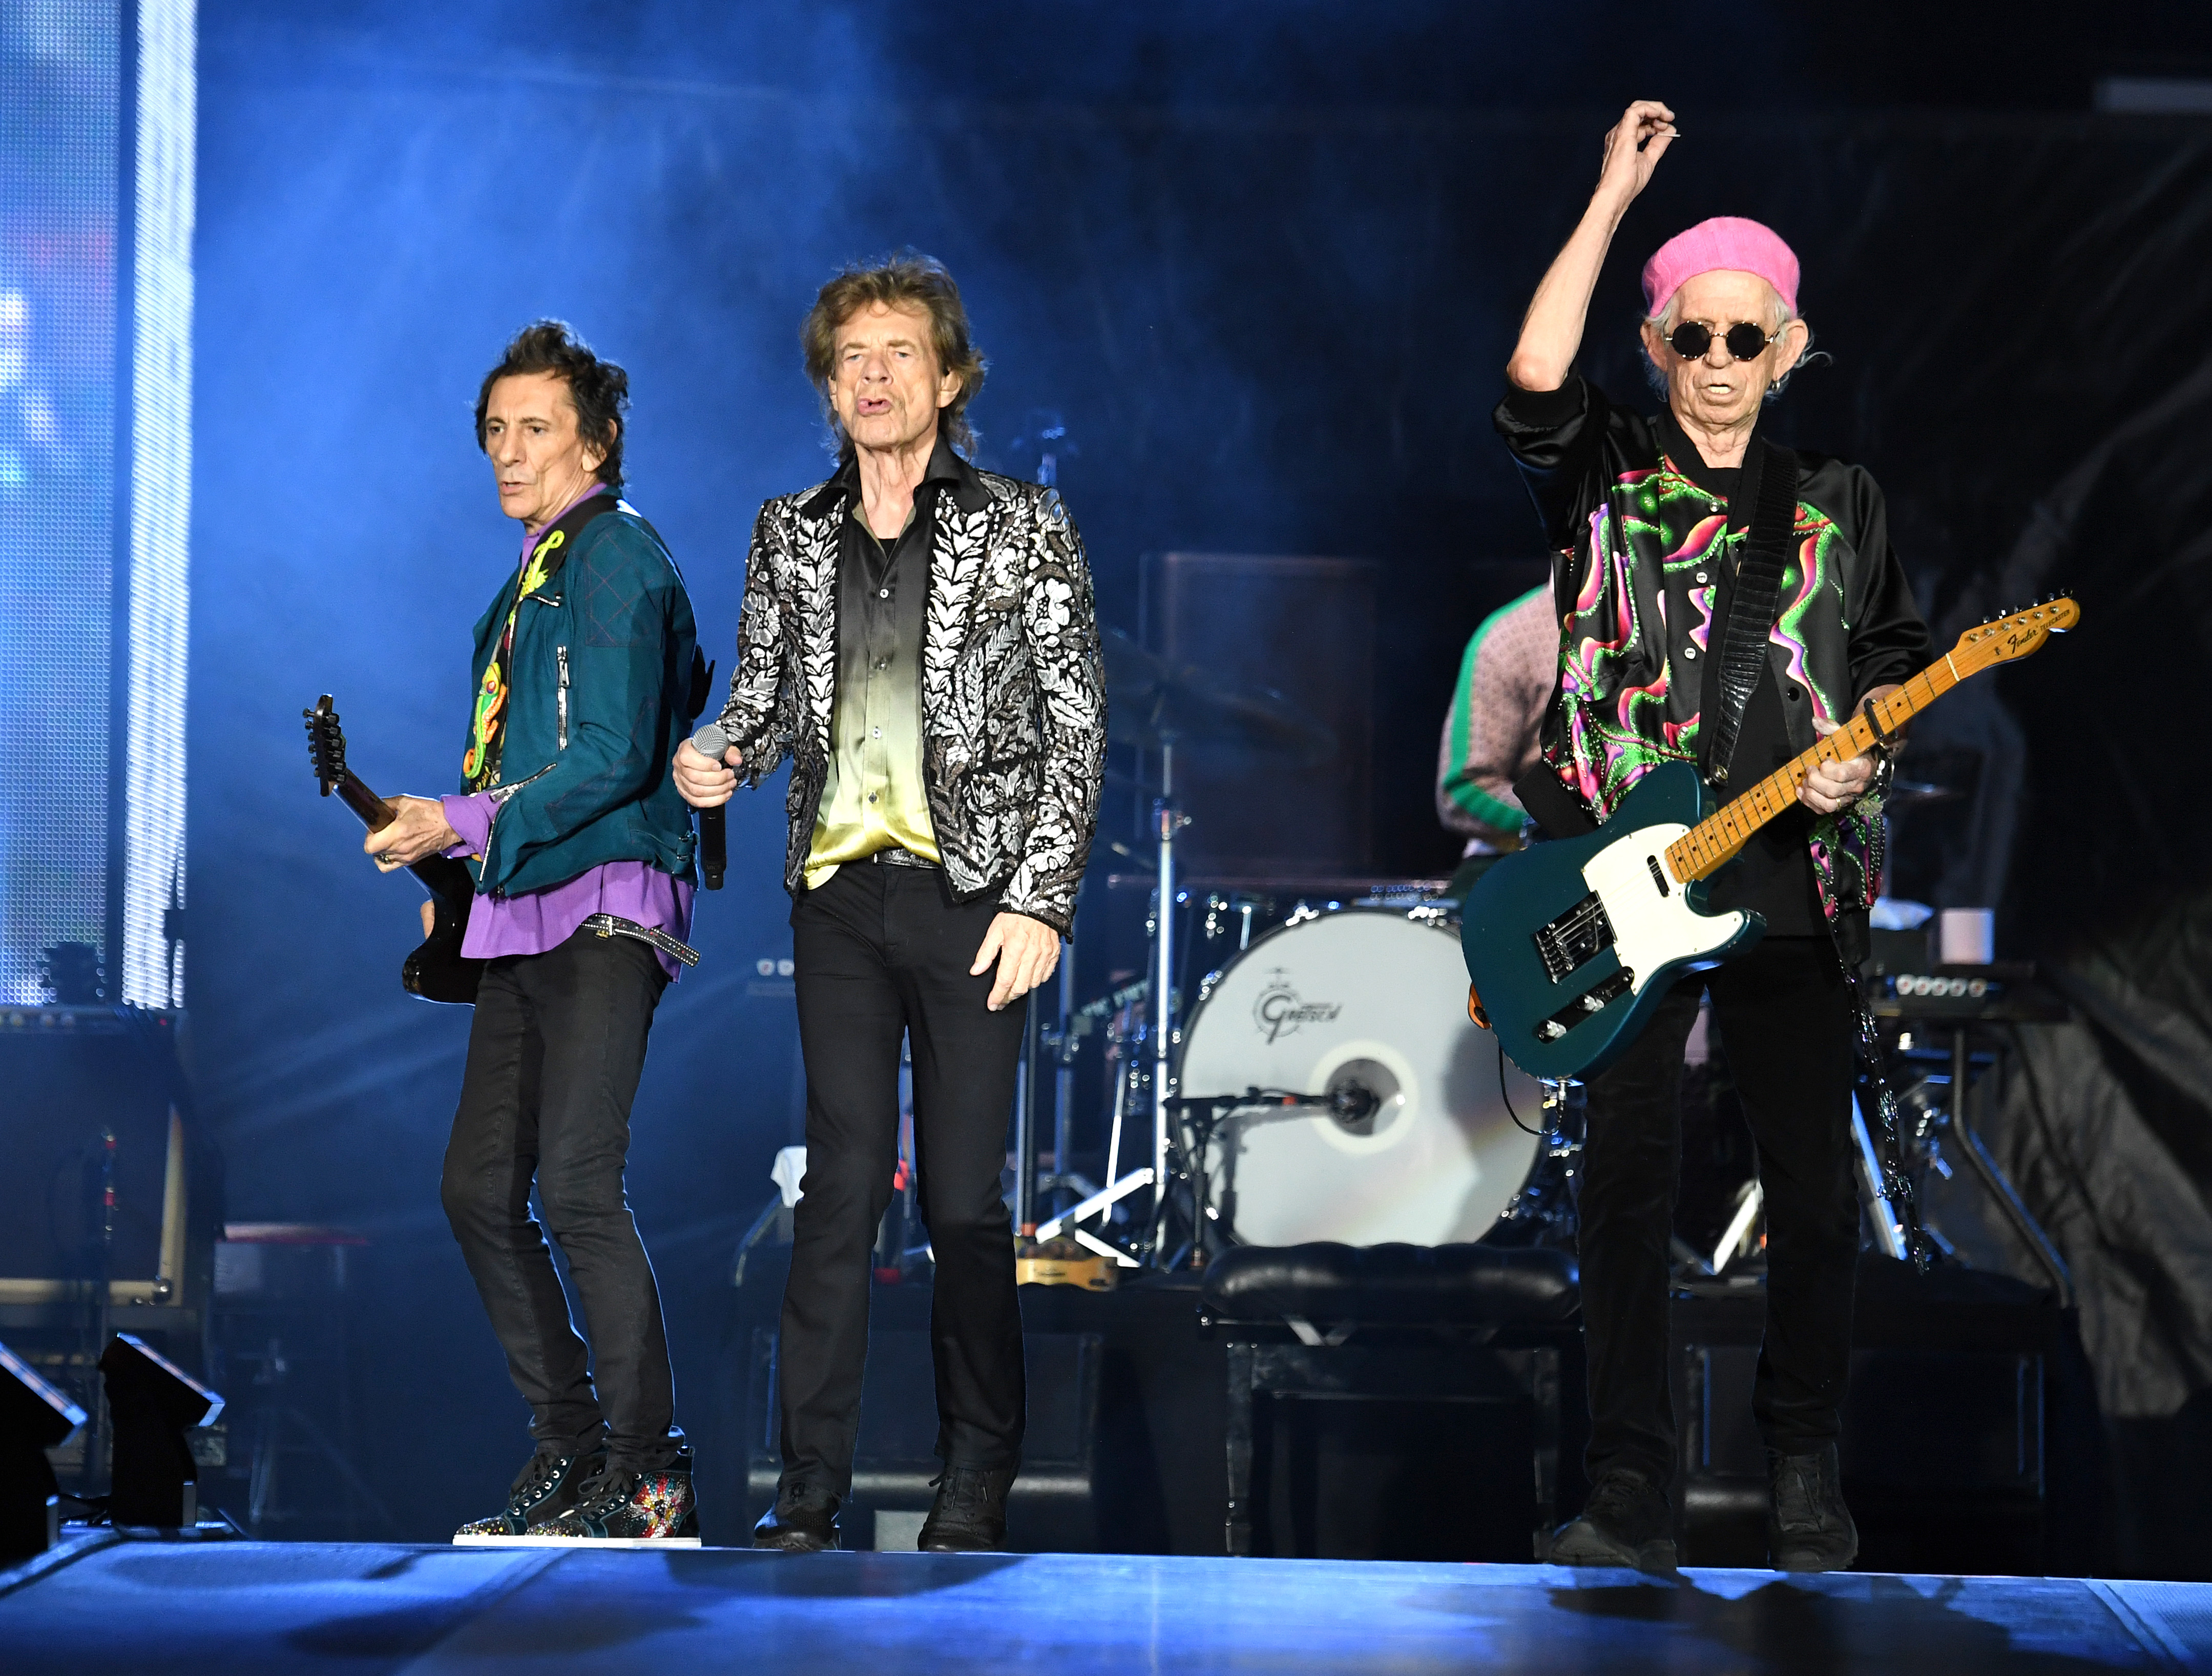 Rolling Stones drop 'Brown Sugar' from tour setlist over lyrics